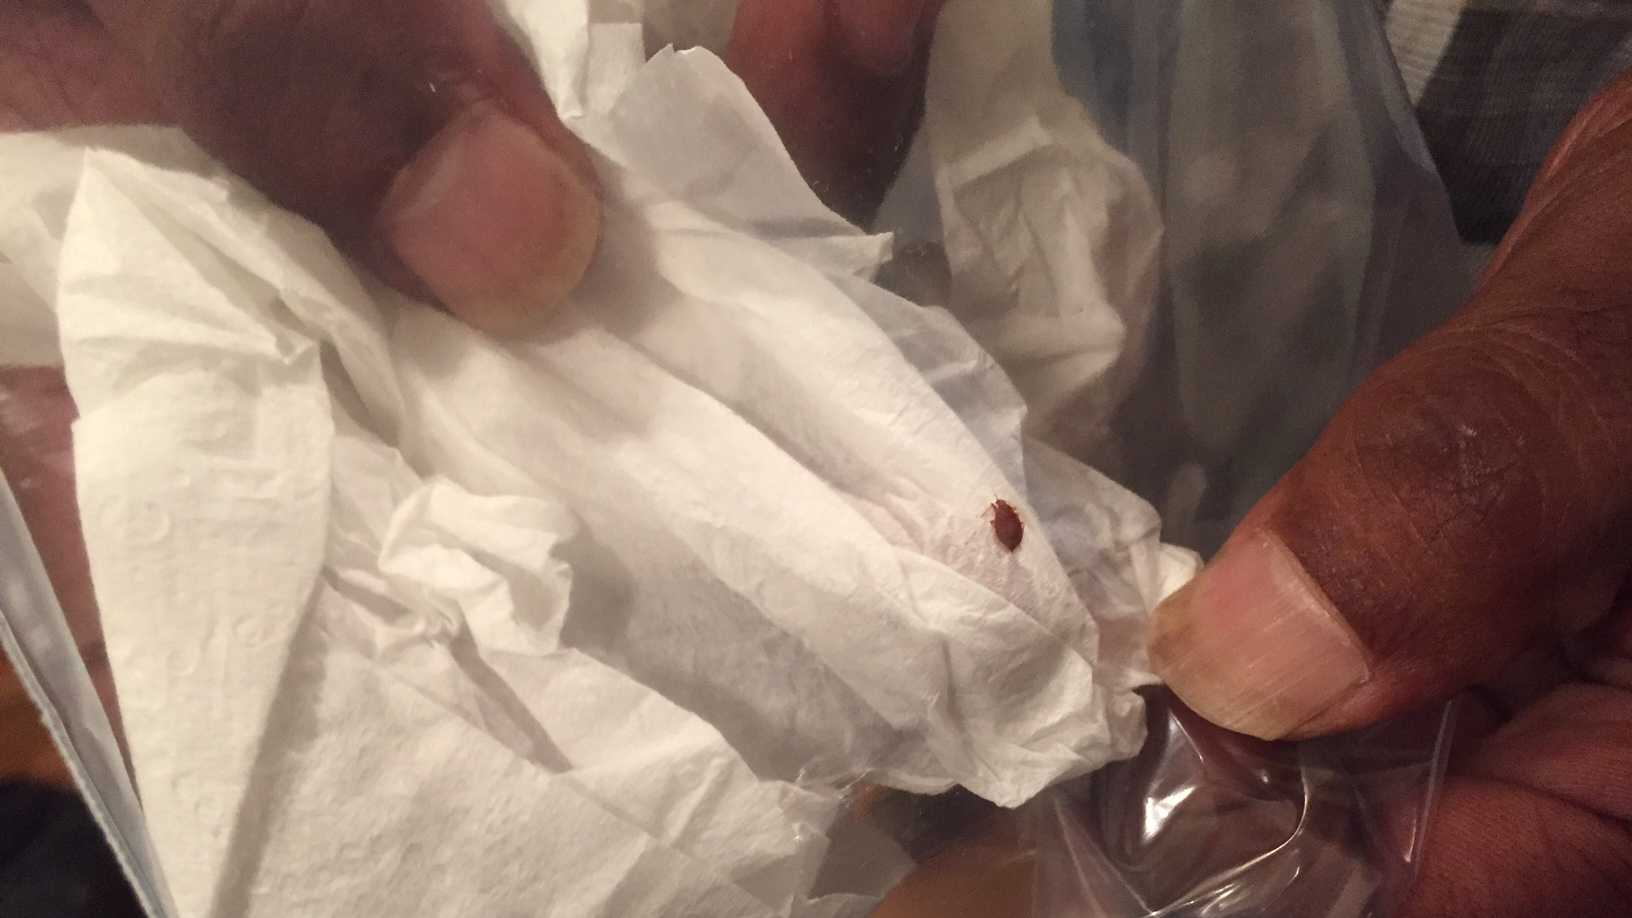 A tenant at Towers East shows a bedbug found in their apartment